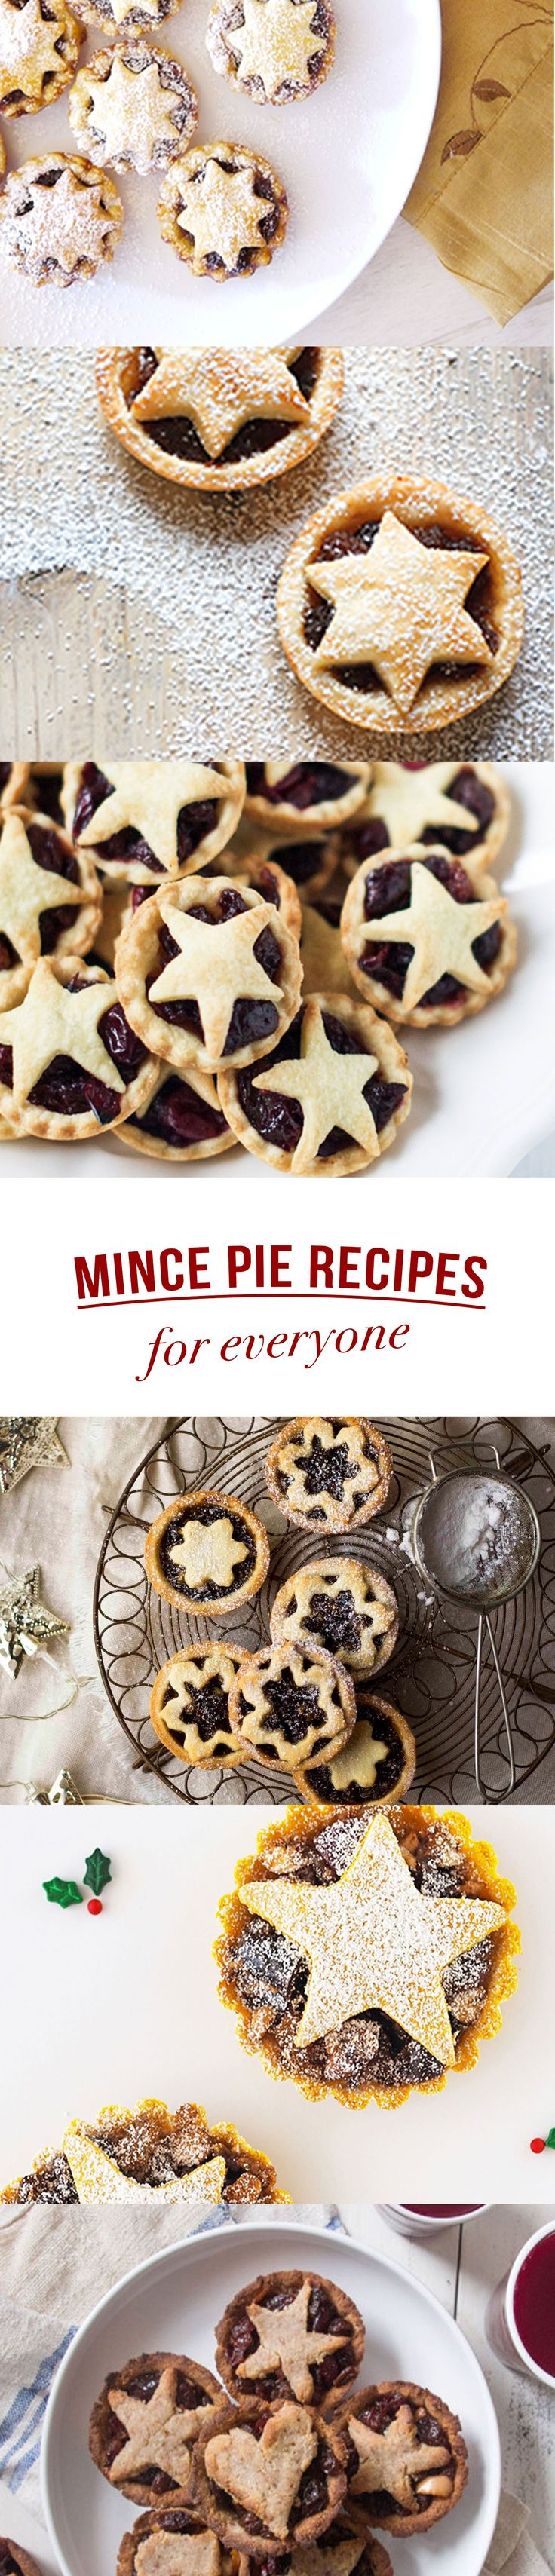 Paleo? Dairy-free? Vegan? Gluten-free? Or just a regular old fashioned mince pie? No matter what your preference, we've got a mince pie recipe for you!